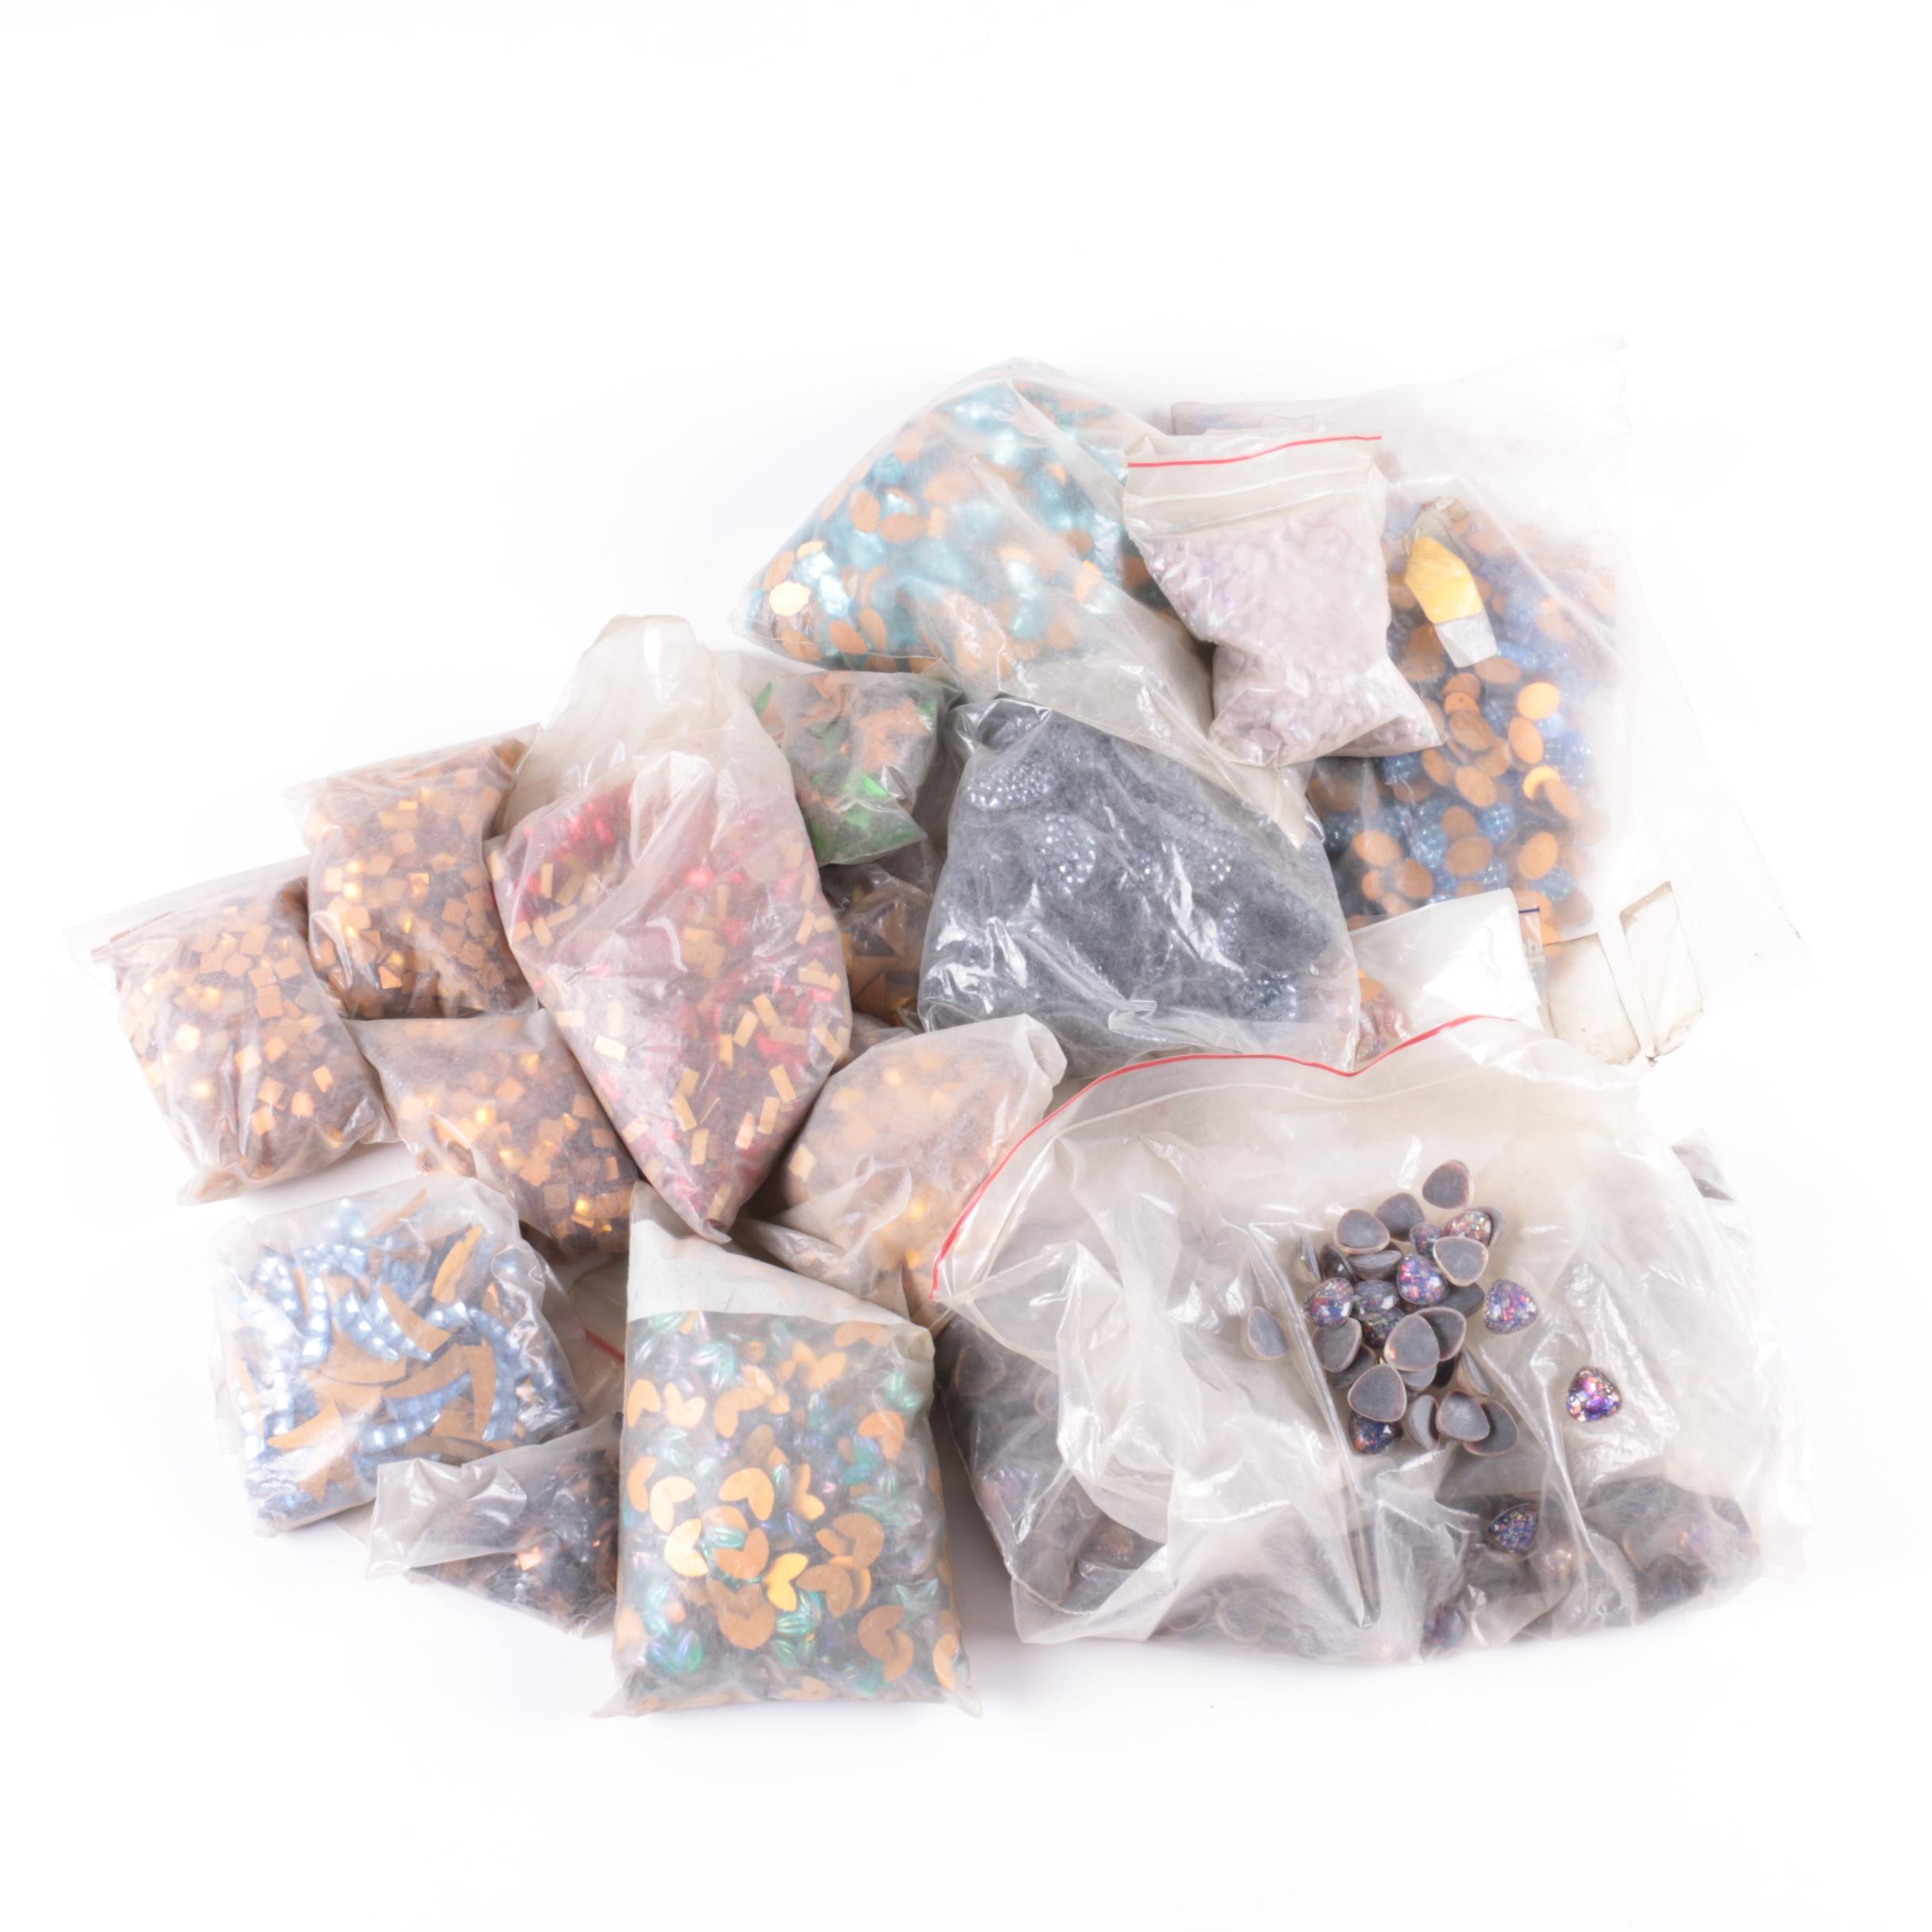 Assorted Swarovski Crystals